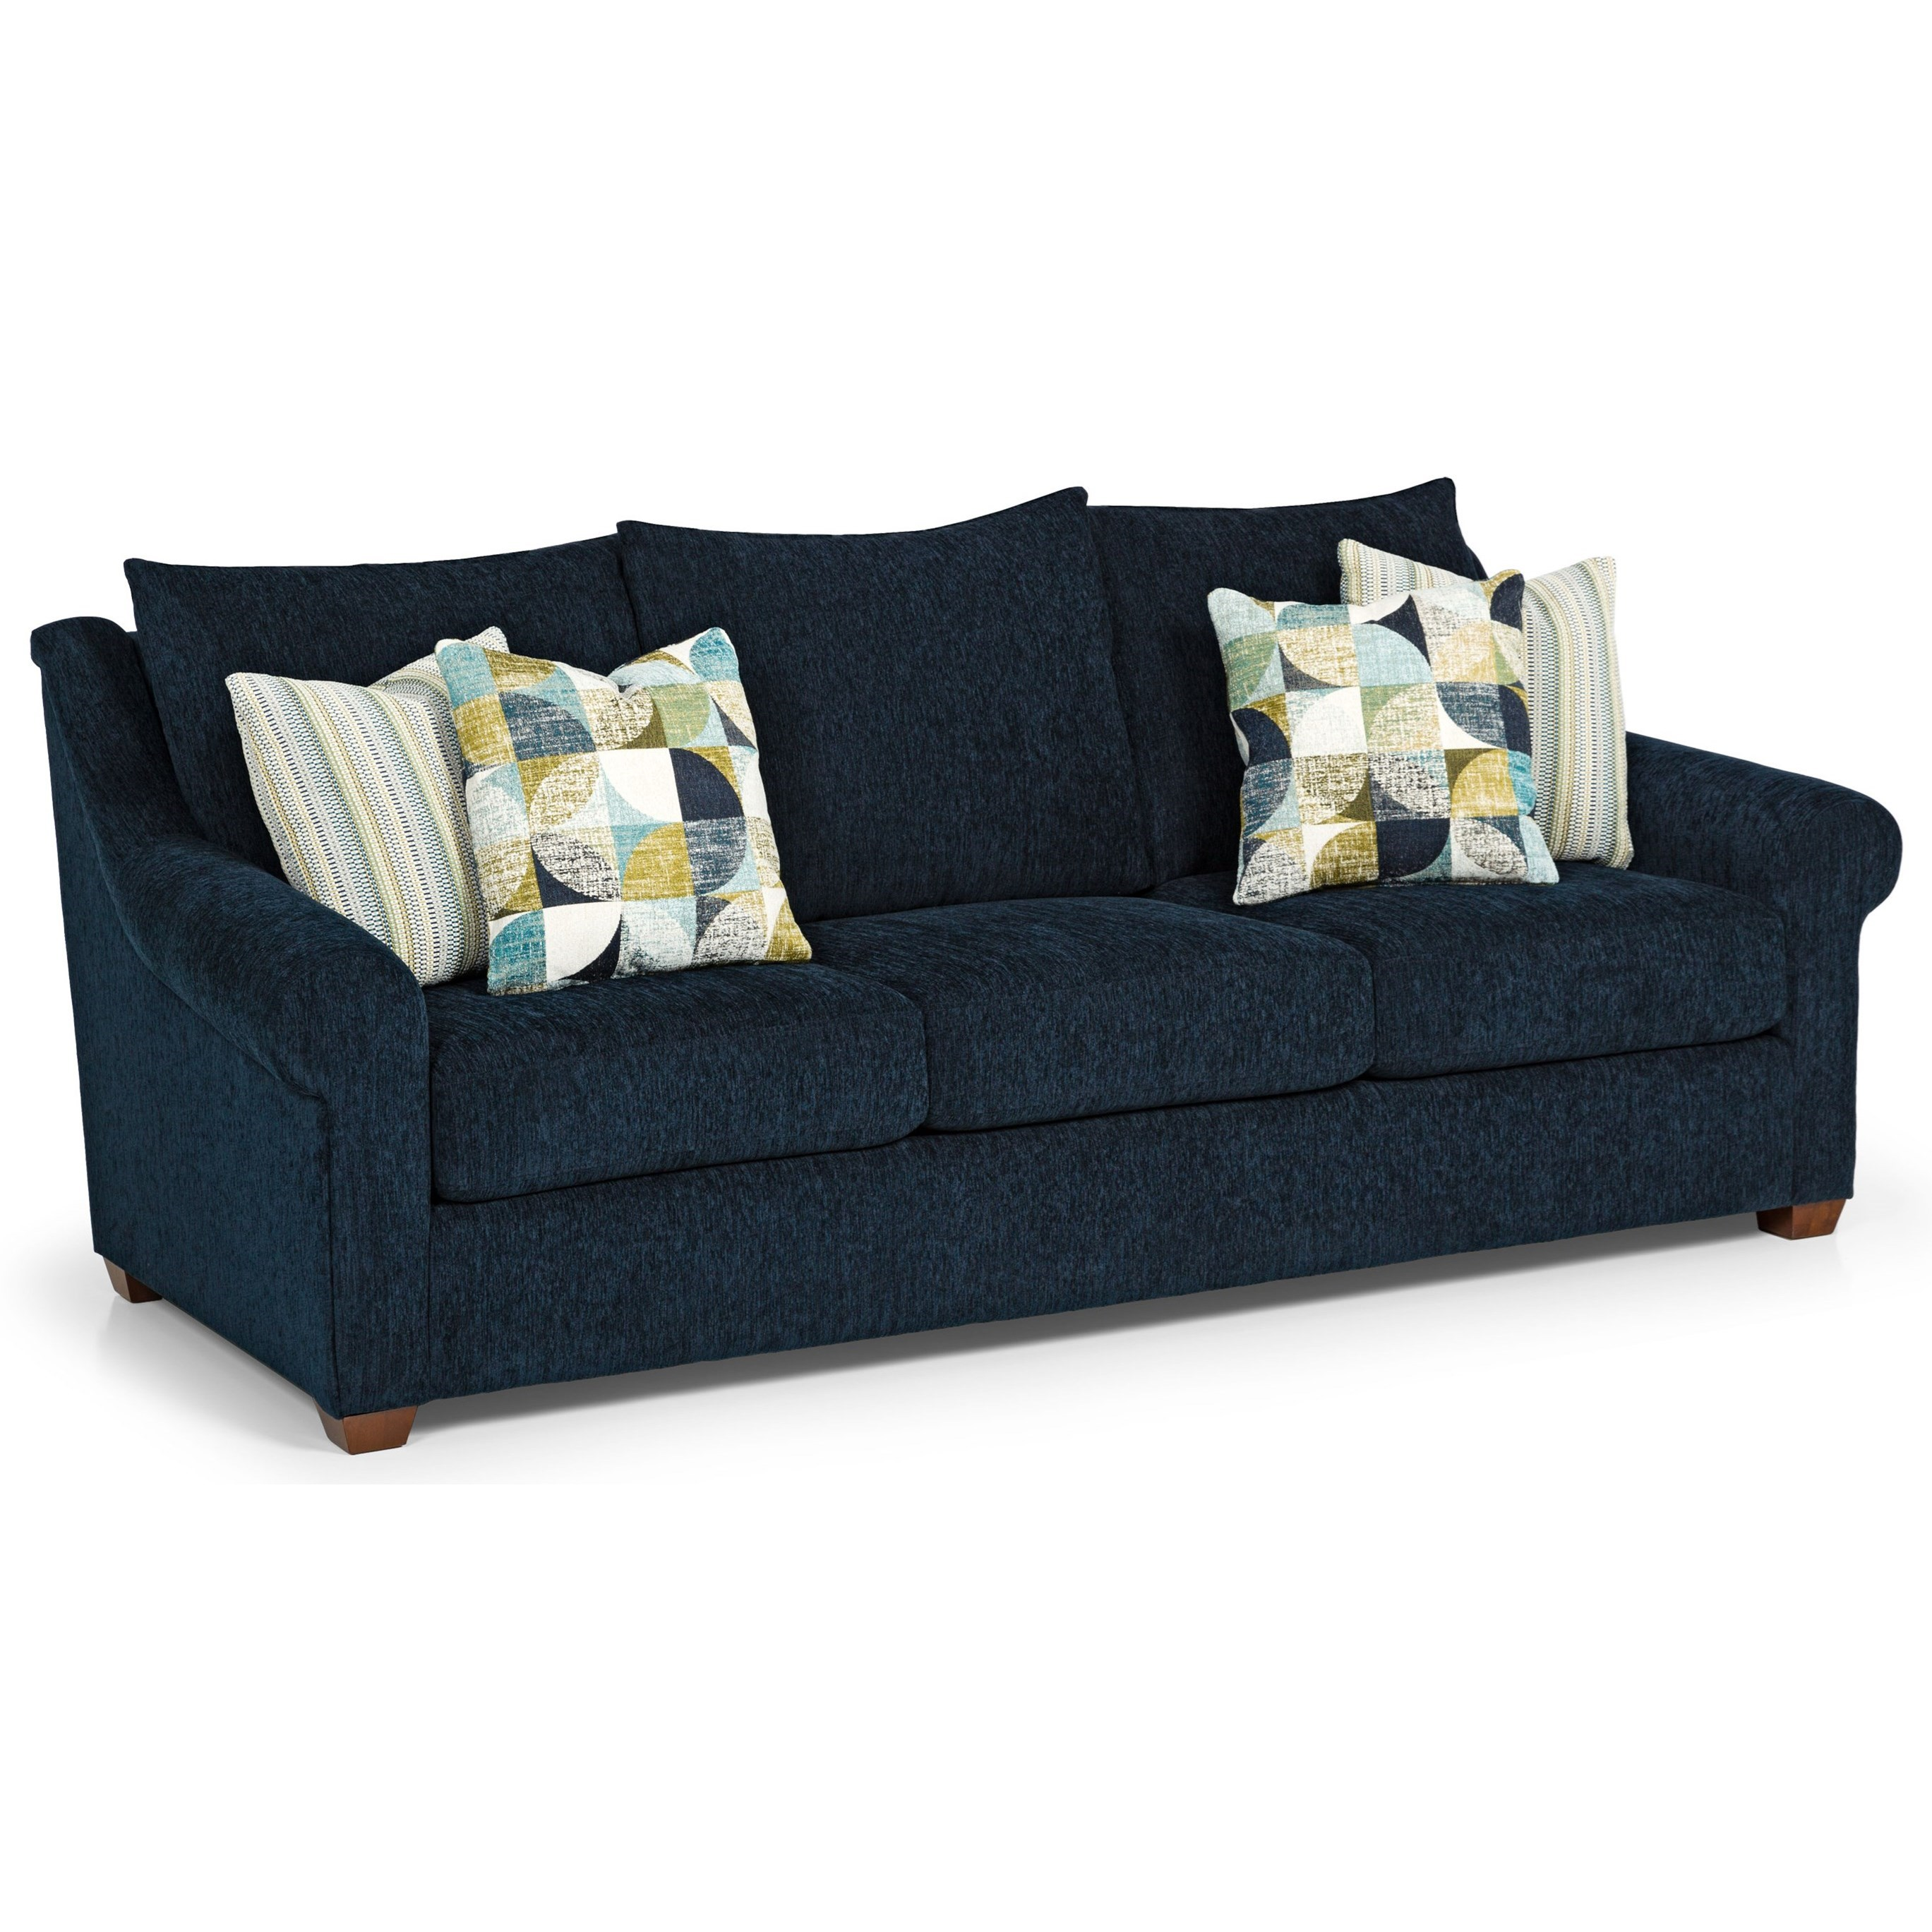 489 Sofa by Stanton at Wilson's Furniture